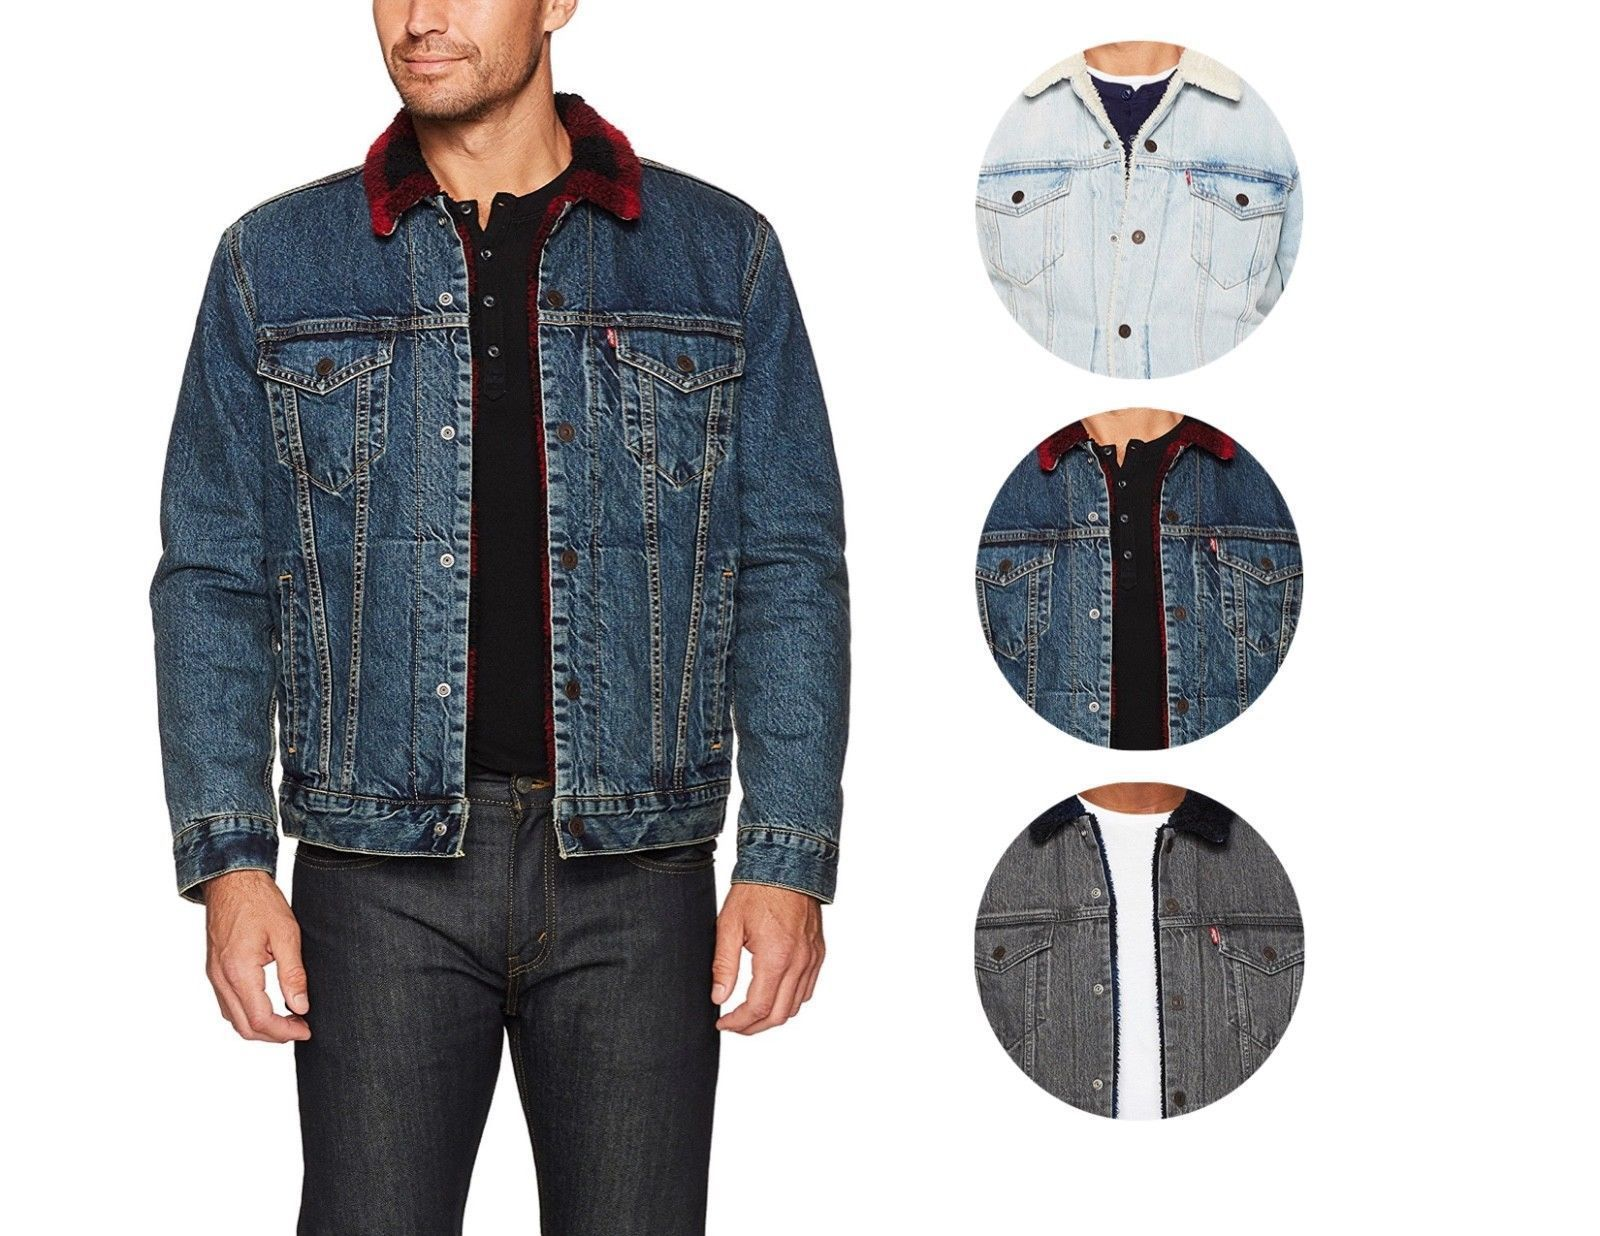 Levi's Men's Classic Button Up Cotton Sherpa Trucker Jacket